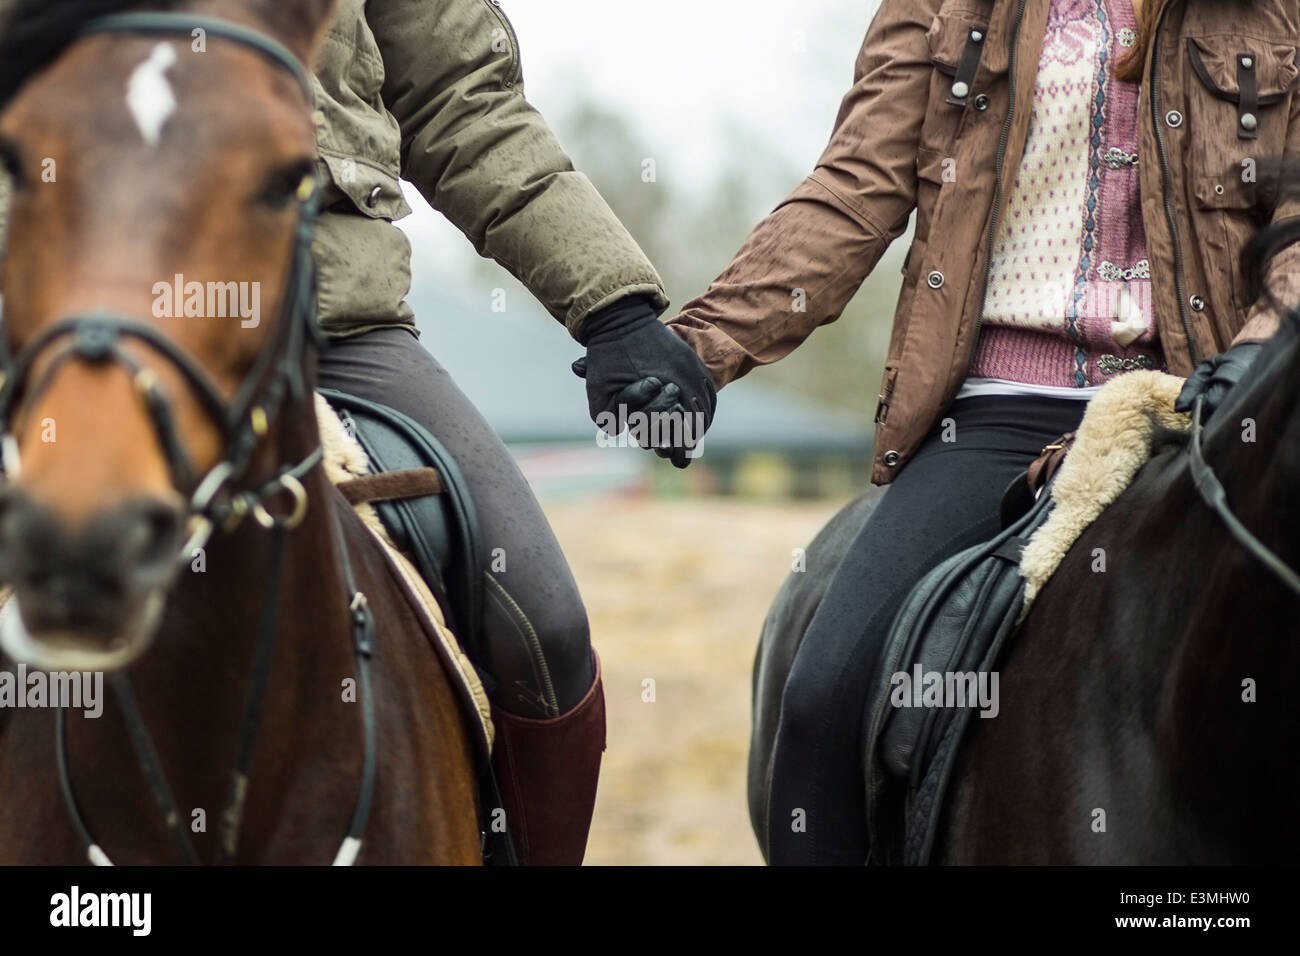 Low section of couple holding hands while riding horses - Stock Image